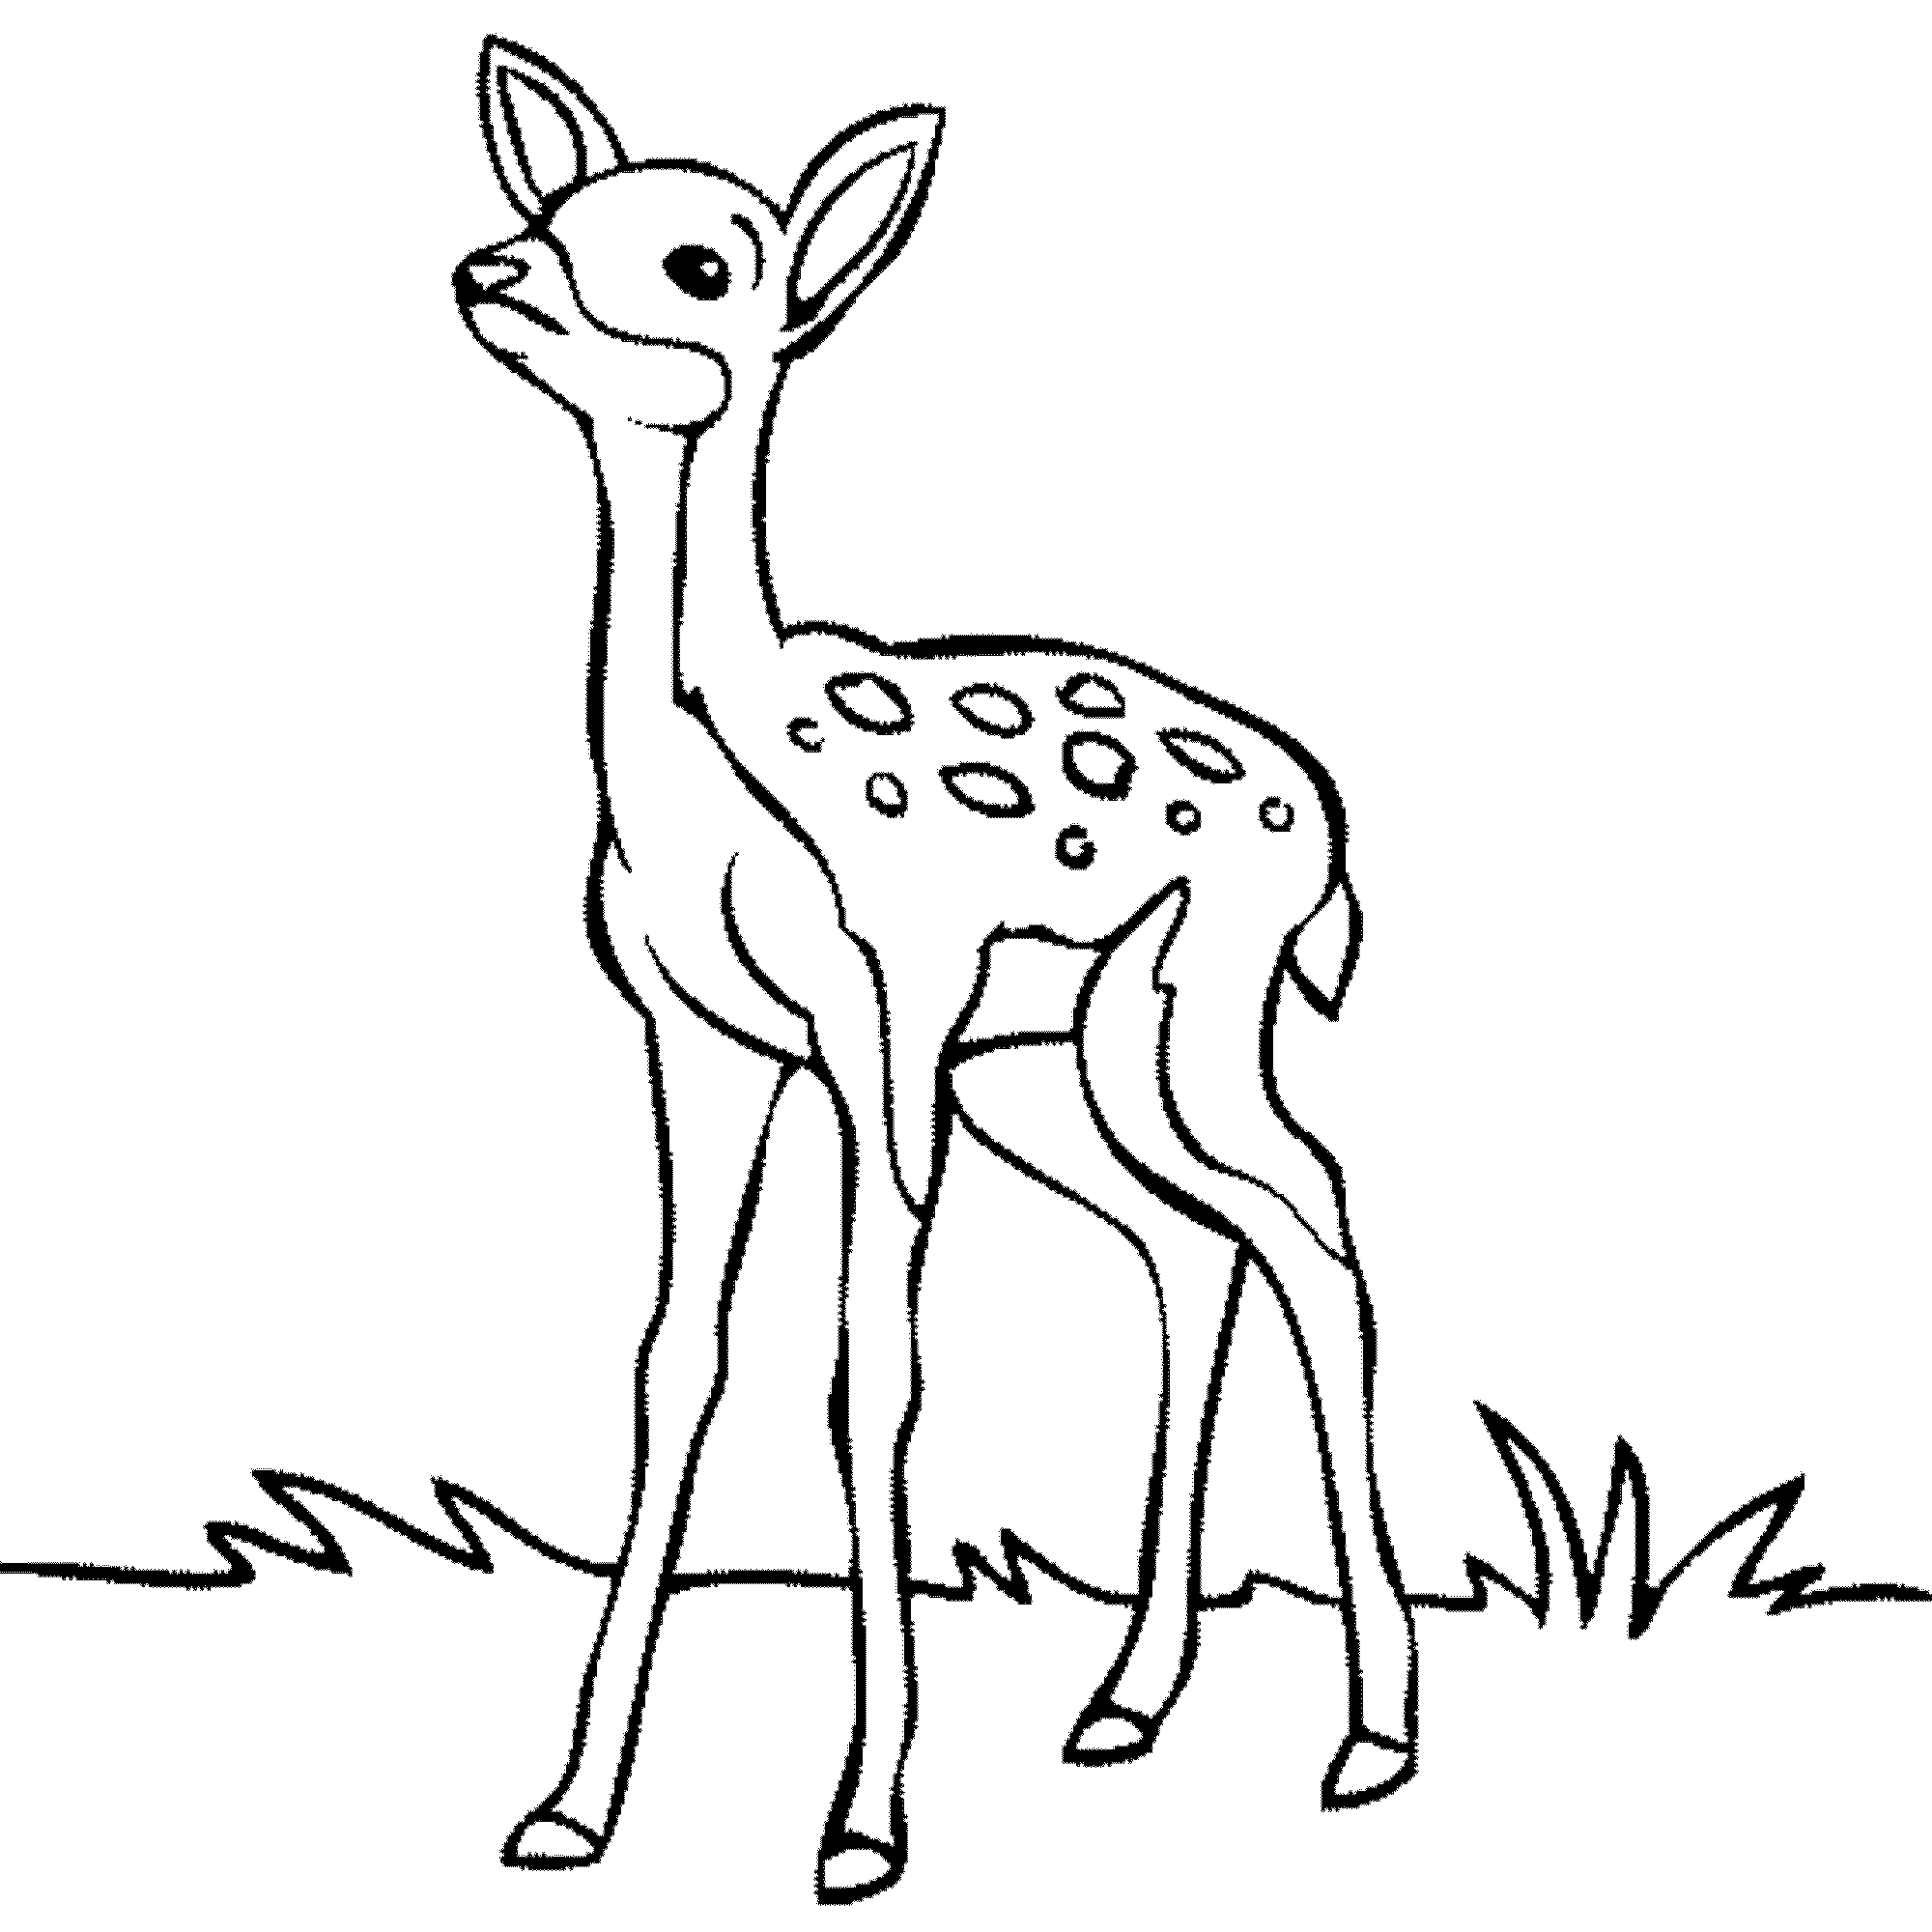 pictures of deers to color free printable deer coloring pages for kids to deers of pictures color